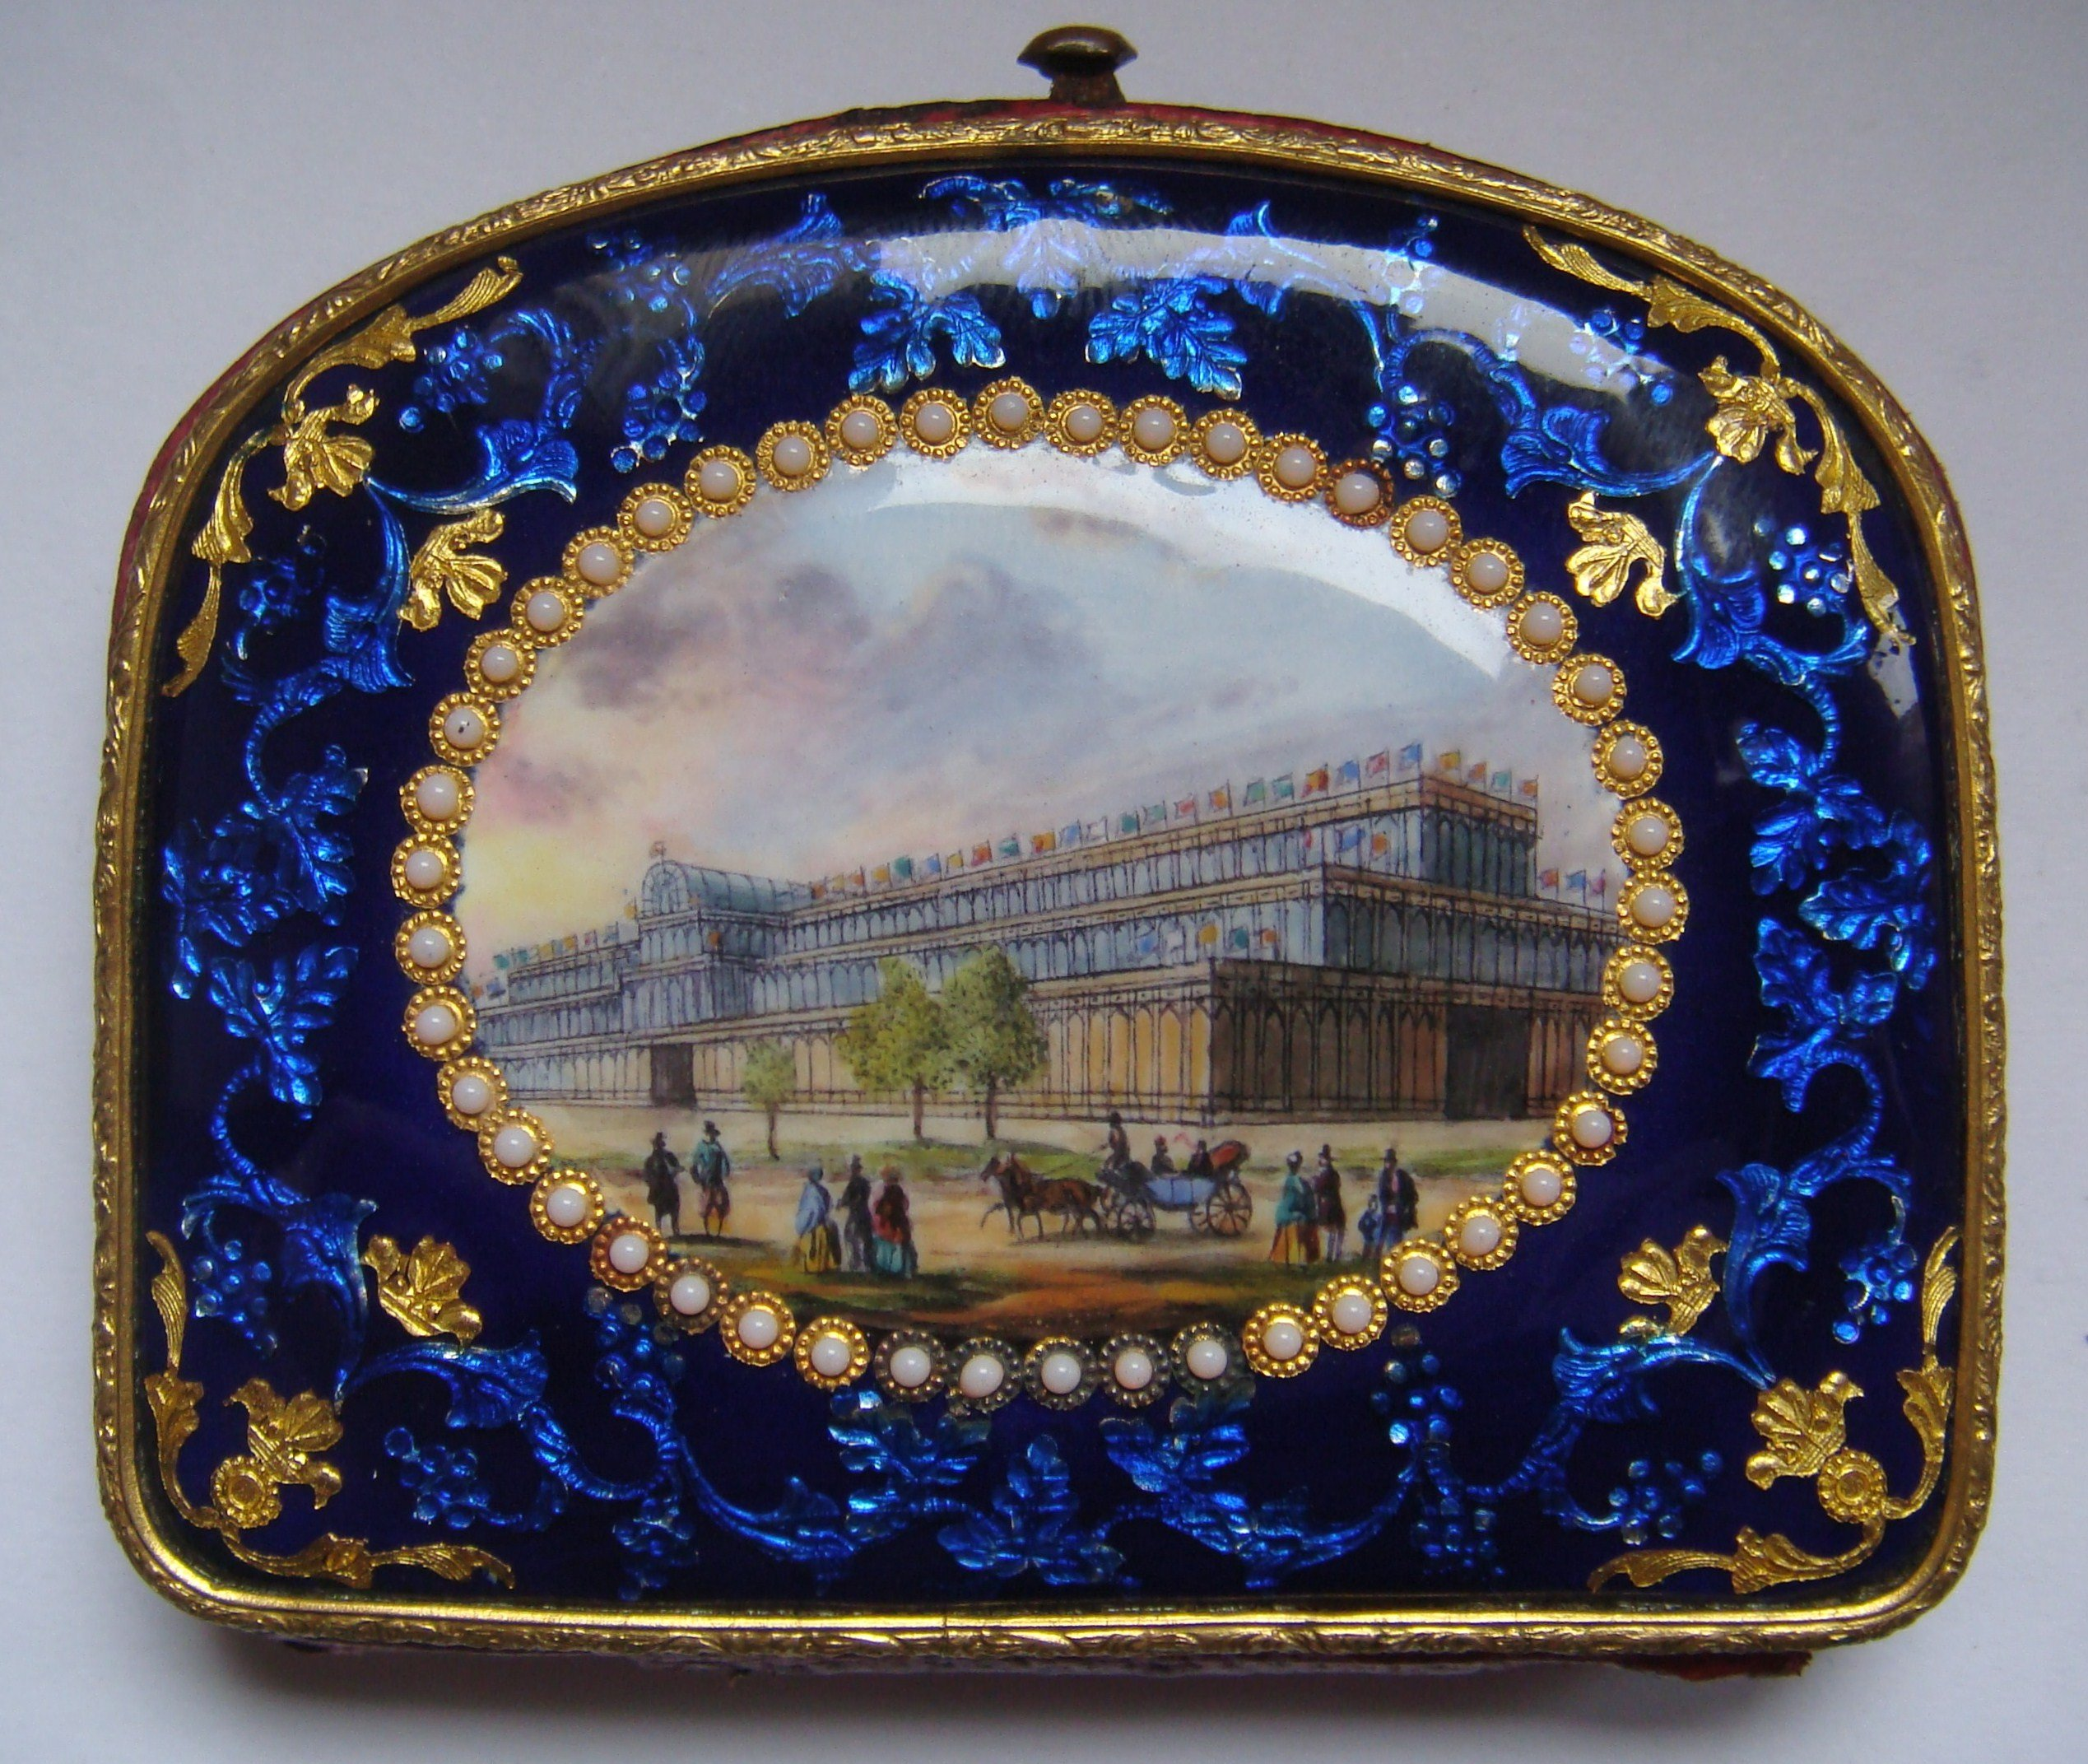 The story of the World Expos as told by purses